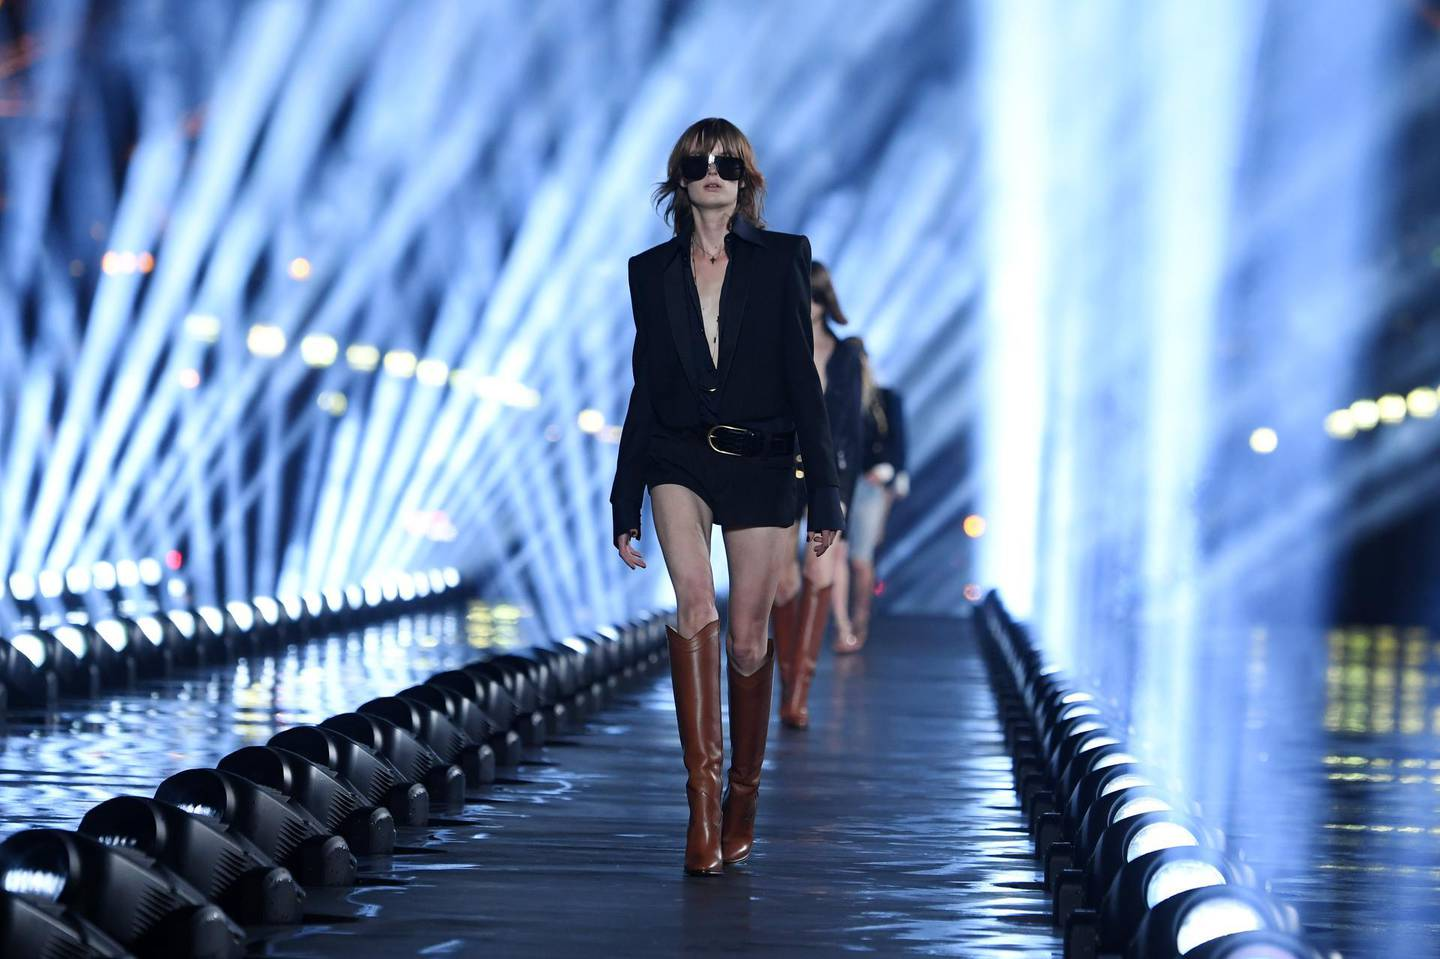 PARIS, FRANCE - SEPTEMBER 24: A model walks the runway during the Saint Laurent Womenswear Spring/Summer 2020 show as part of Paris Fashion Week on September 24, 2019 in Paris, France. (Photo by Pascal Le Segretain/Getty Images)